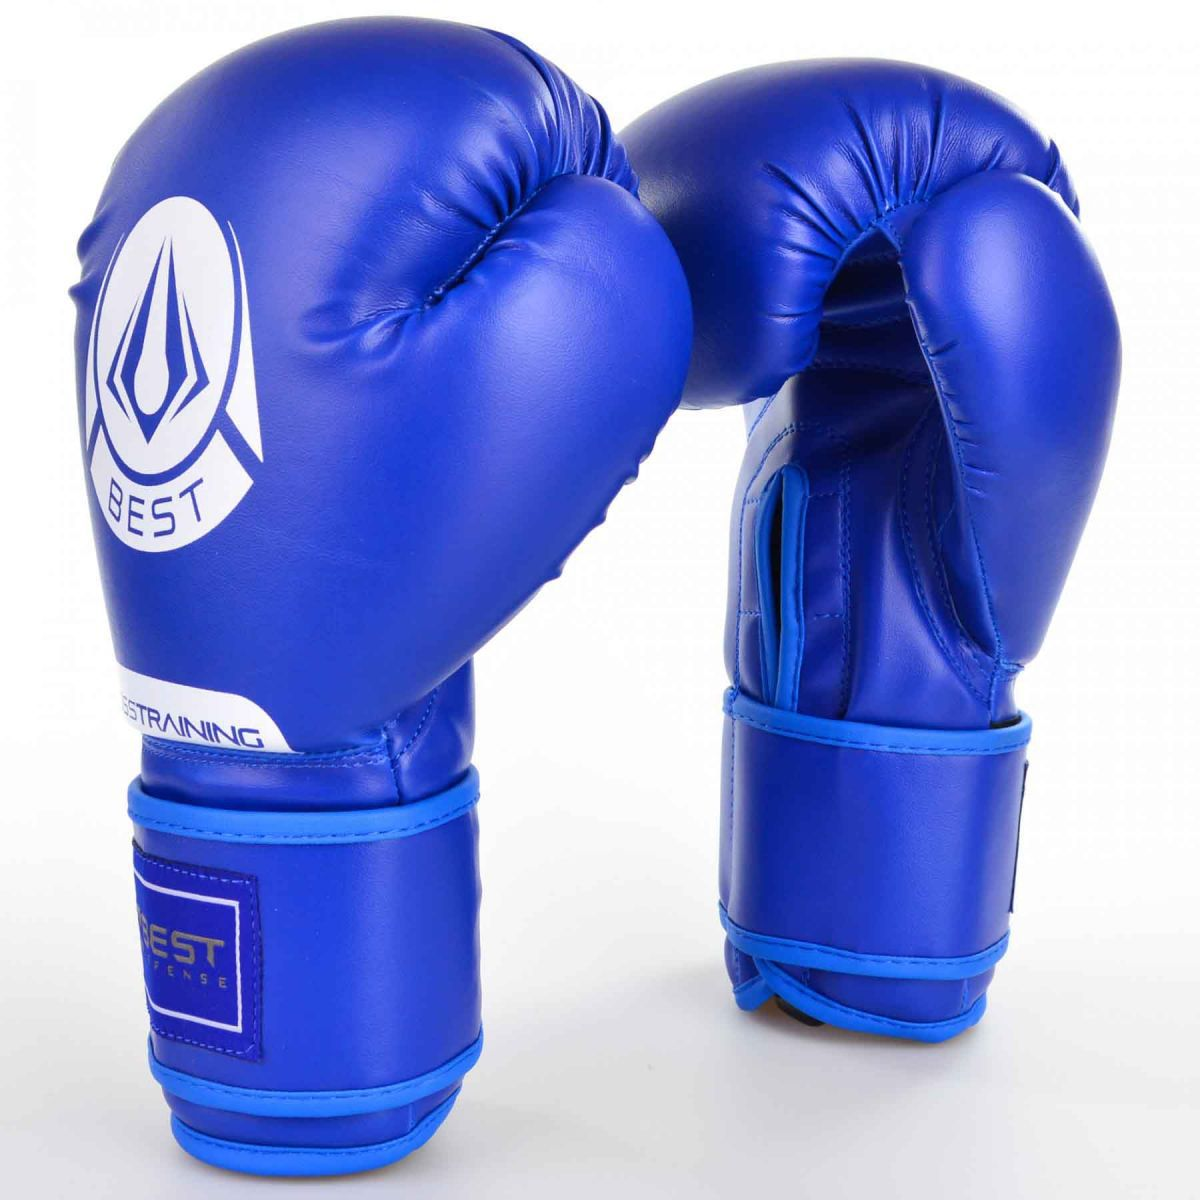 Luvas Boxe / Muay Thai - Cross Trainning- Best Defense - Azul- 10/12/14OZ .